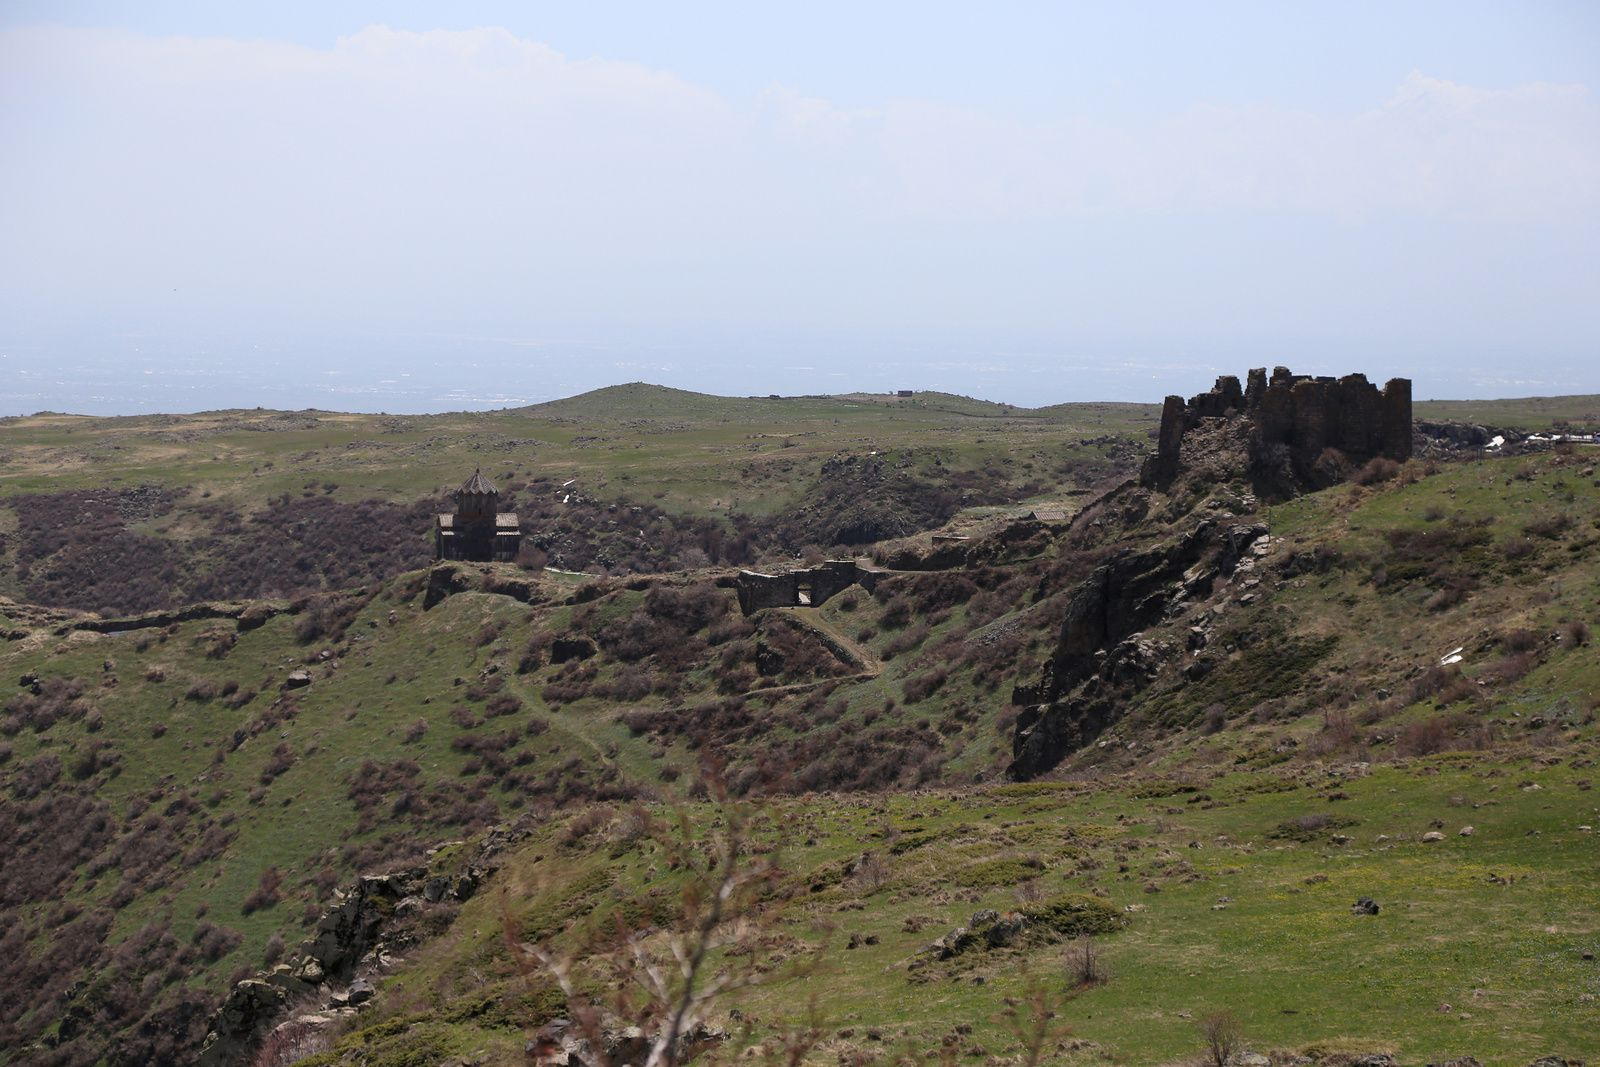 Armenia - The Fortress of Amberd and Vahramashen Church - photo © Bernard Duyck 2019